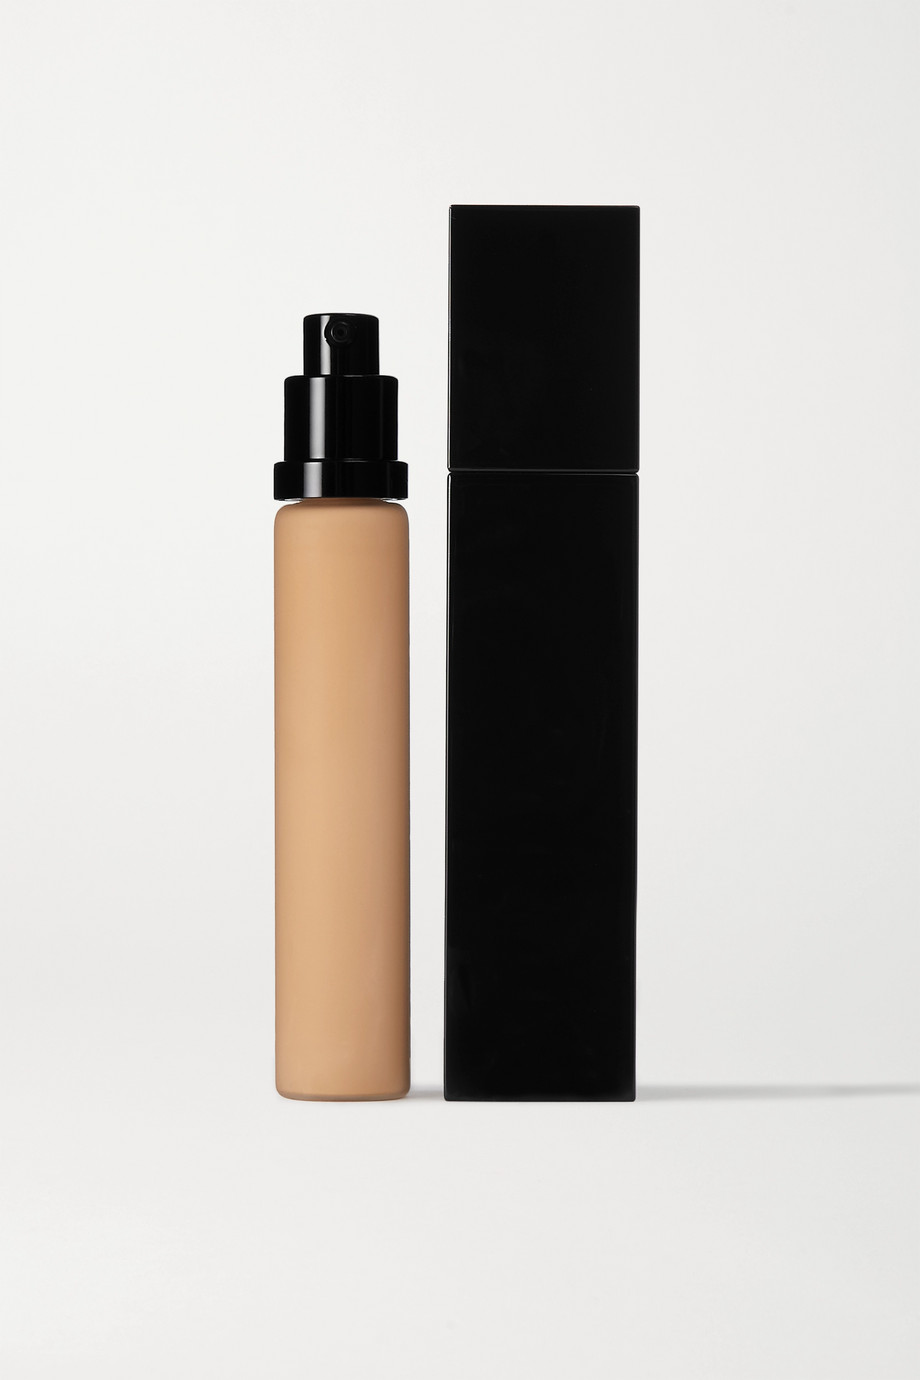 Serge Lutens Spectral L'Impalpable Foundation – O40, 30 ml – Foundation